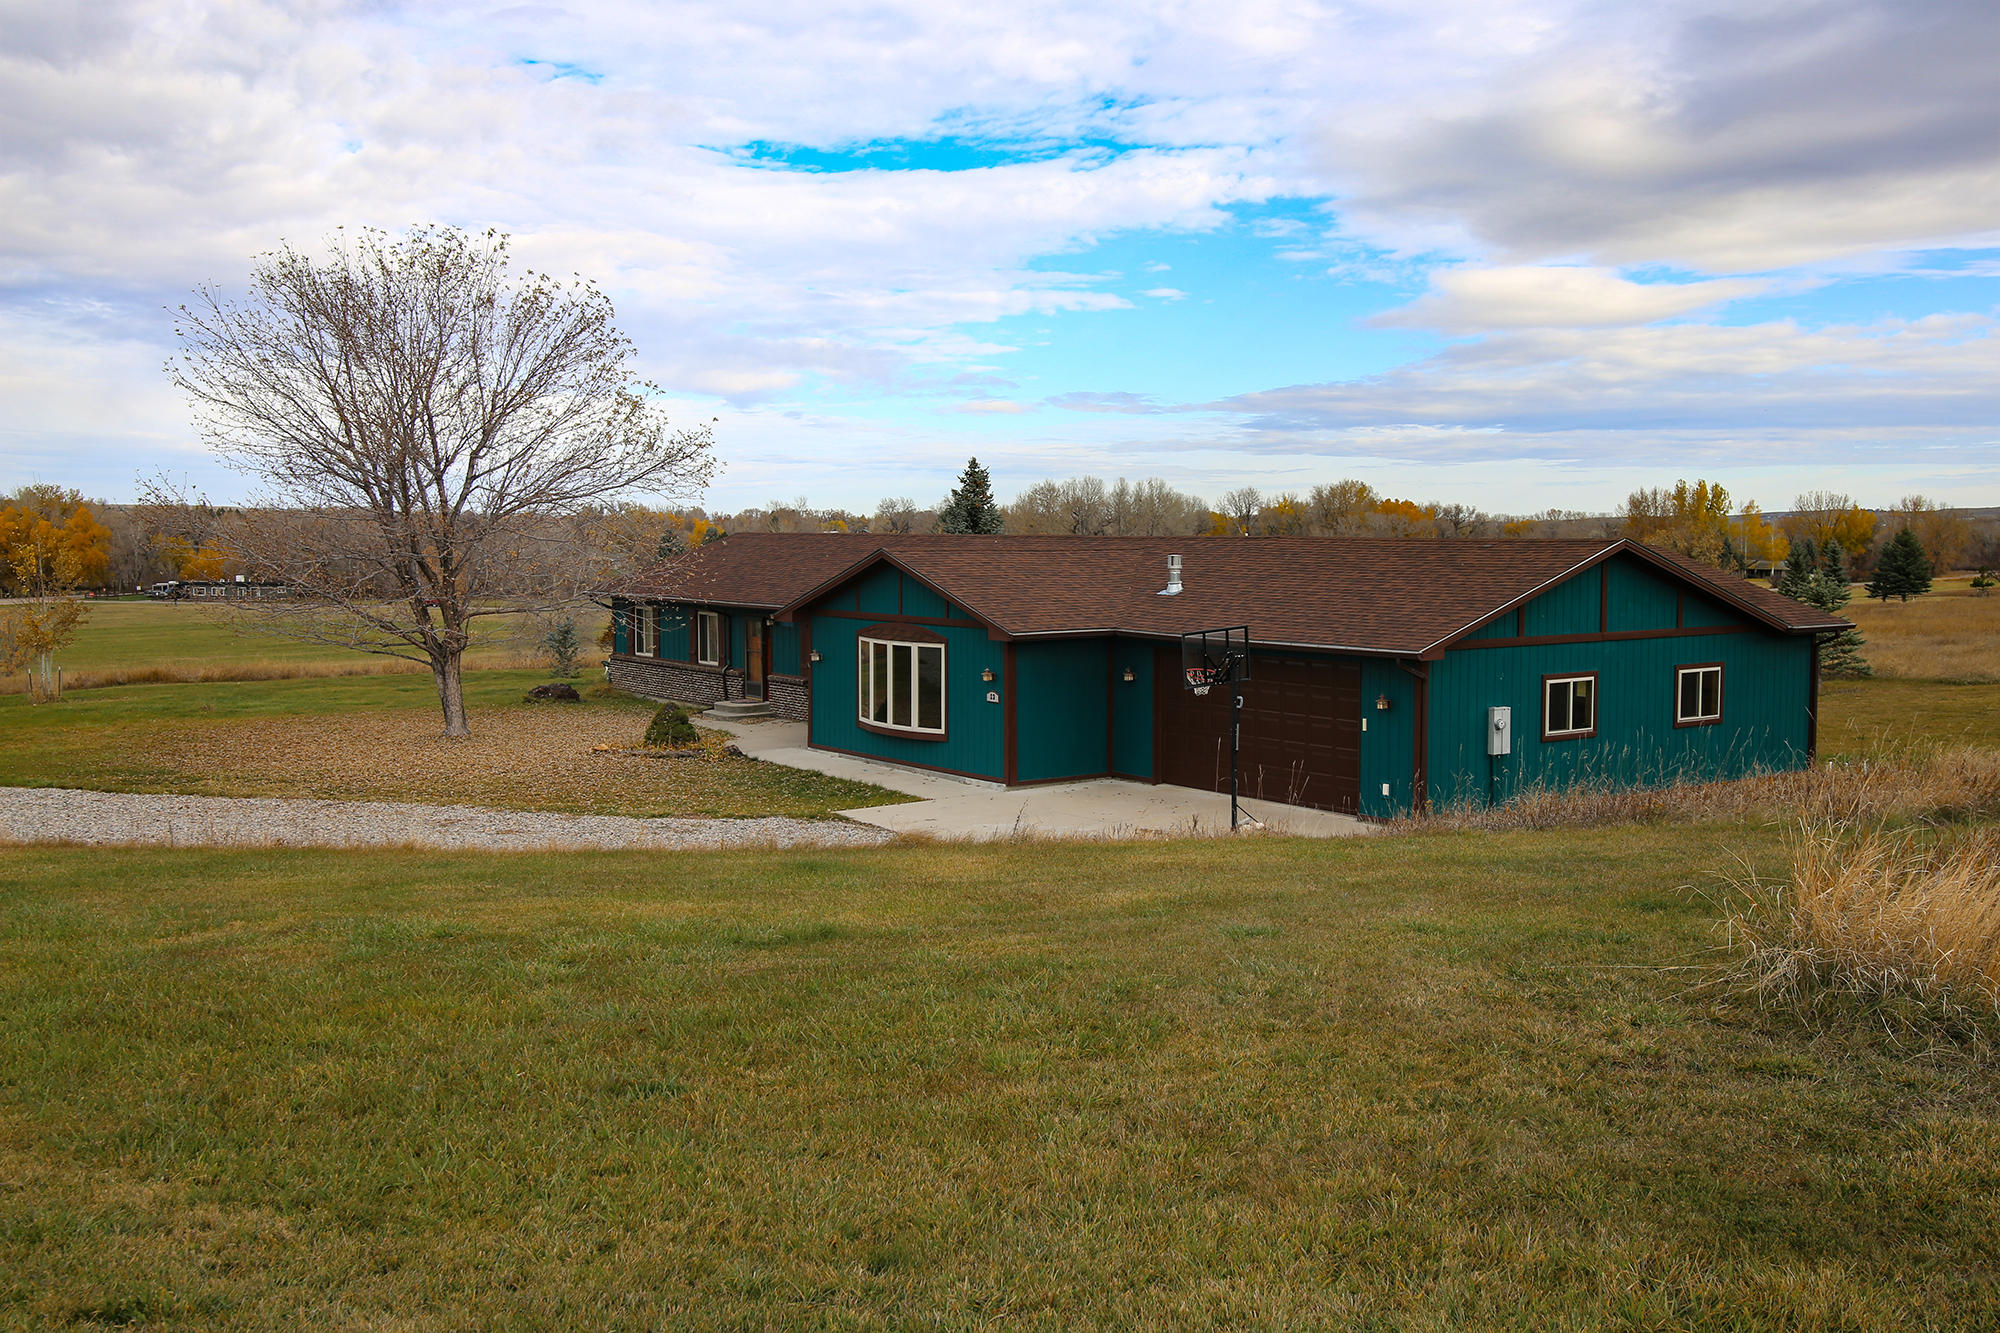 23 Harlequin Drive, Sheridan, Wyoming 82801, 3 Bedrooms Bedrooms, ,3 BathroomsBathrooms,Residential,For Sale,Harlequin,18-1133